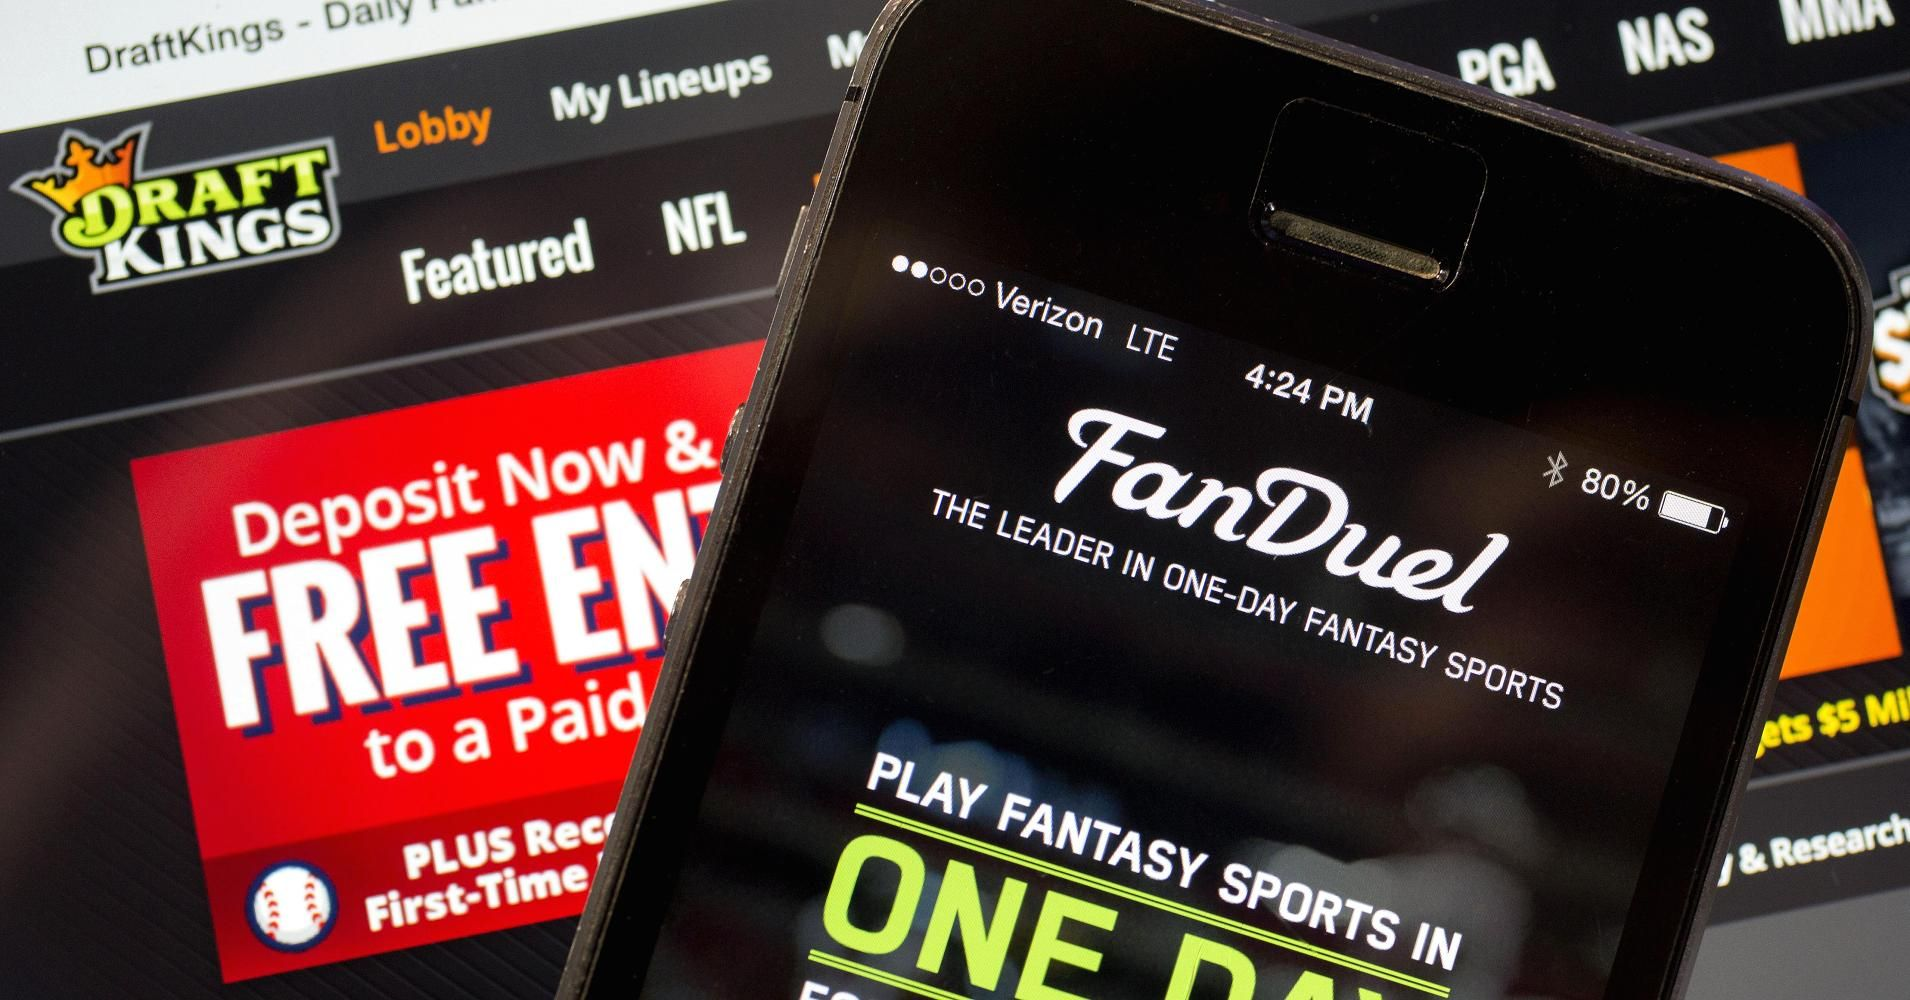 http://heysport.biz/index.html The daily fantasy sports industry is moving faster than anyone can keep up with. A conference this week shed light on changes.